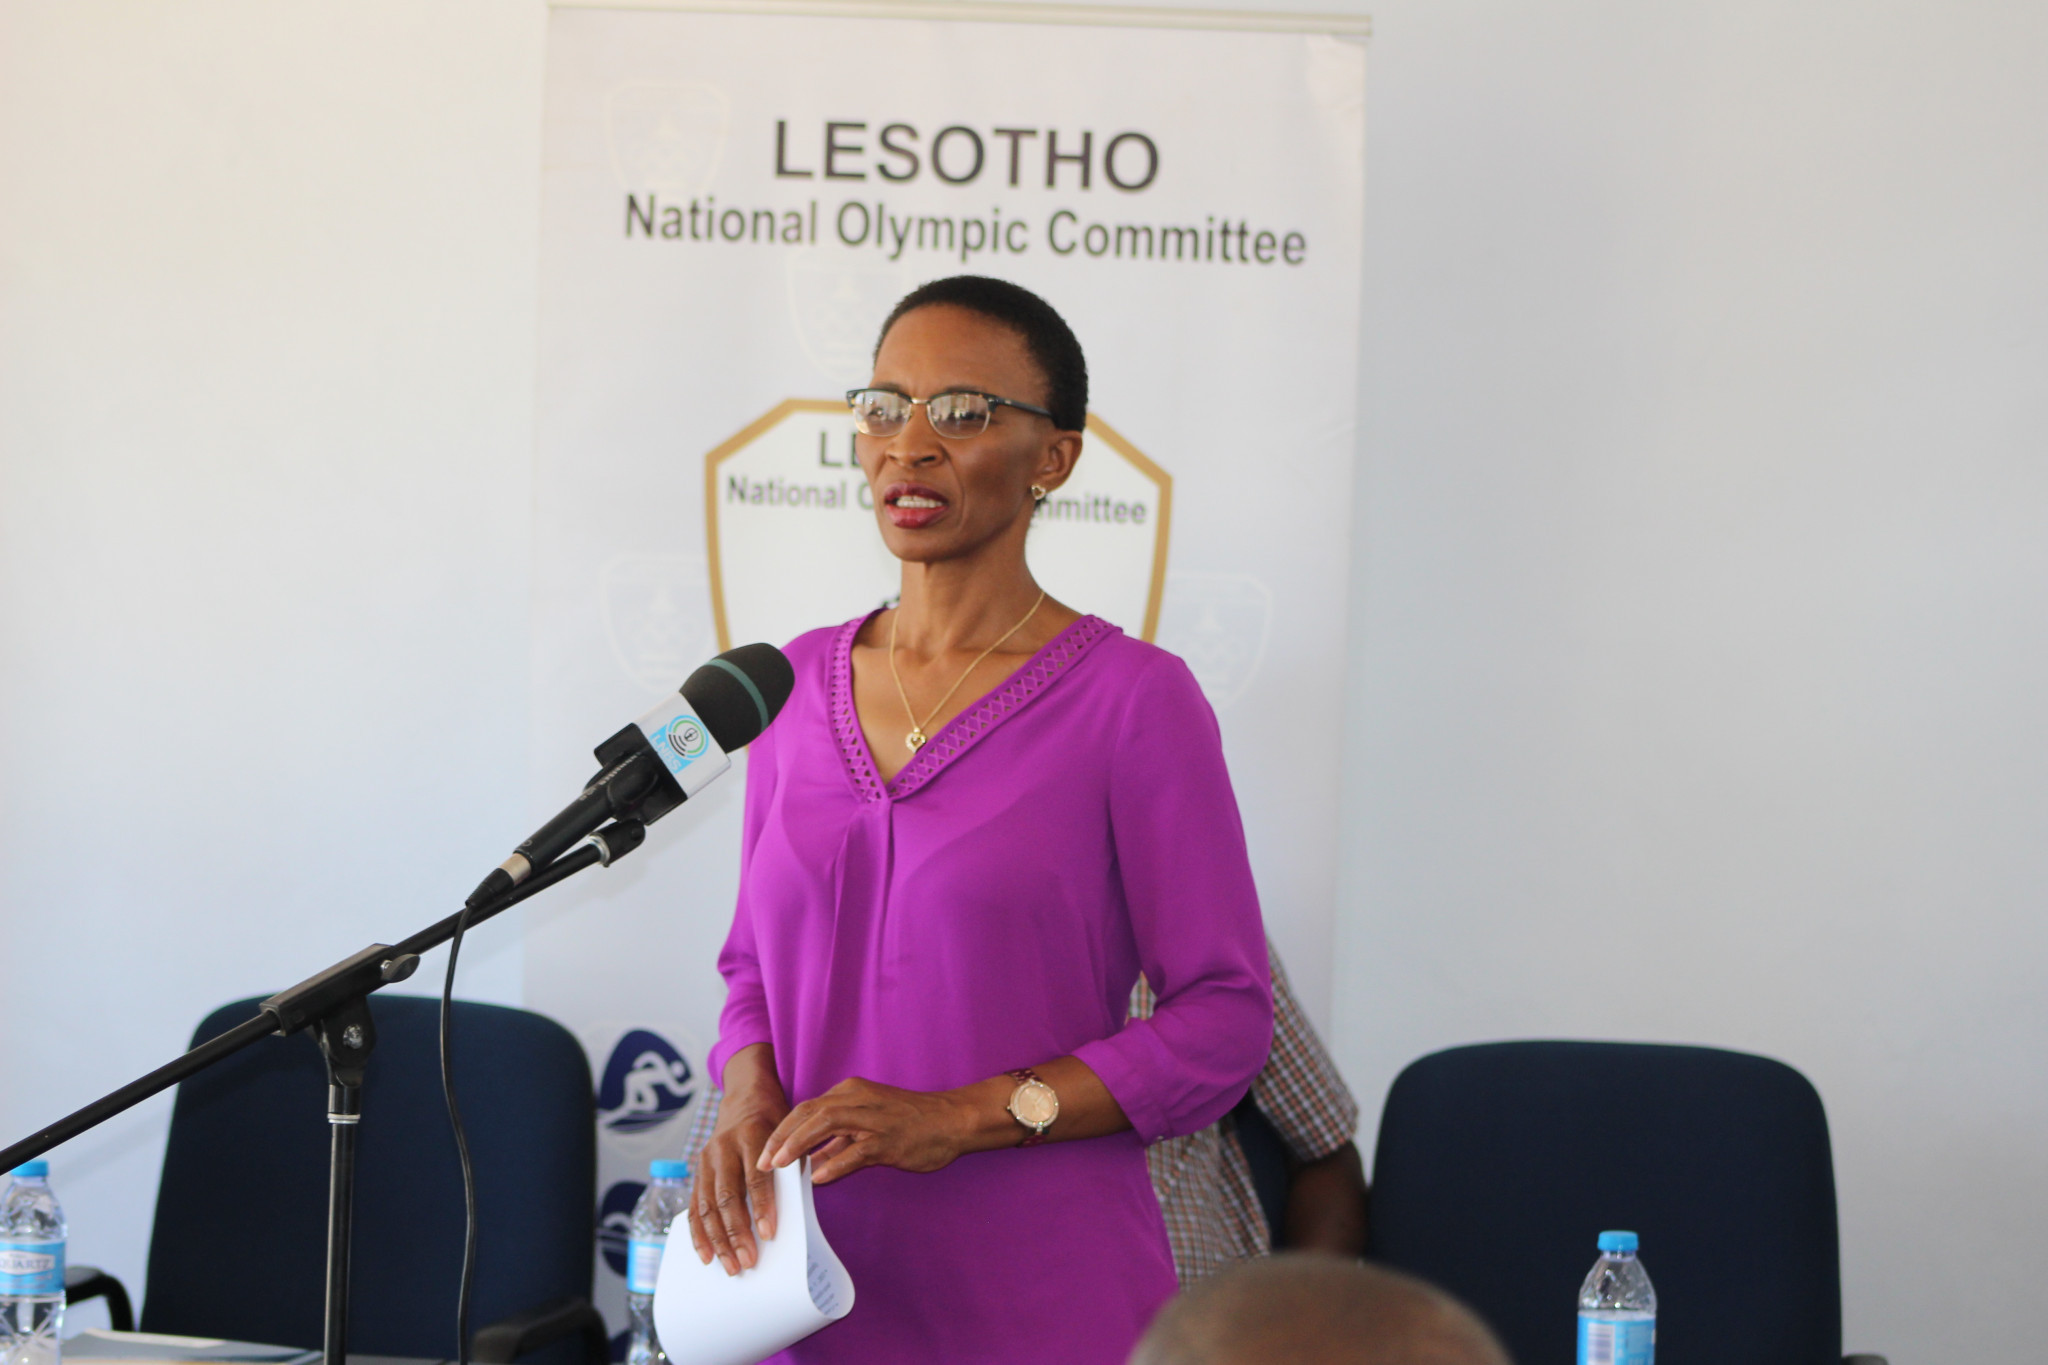 Lesotho Minister of Sport opens country's third Advanced Sports Management Course